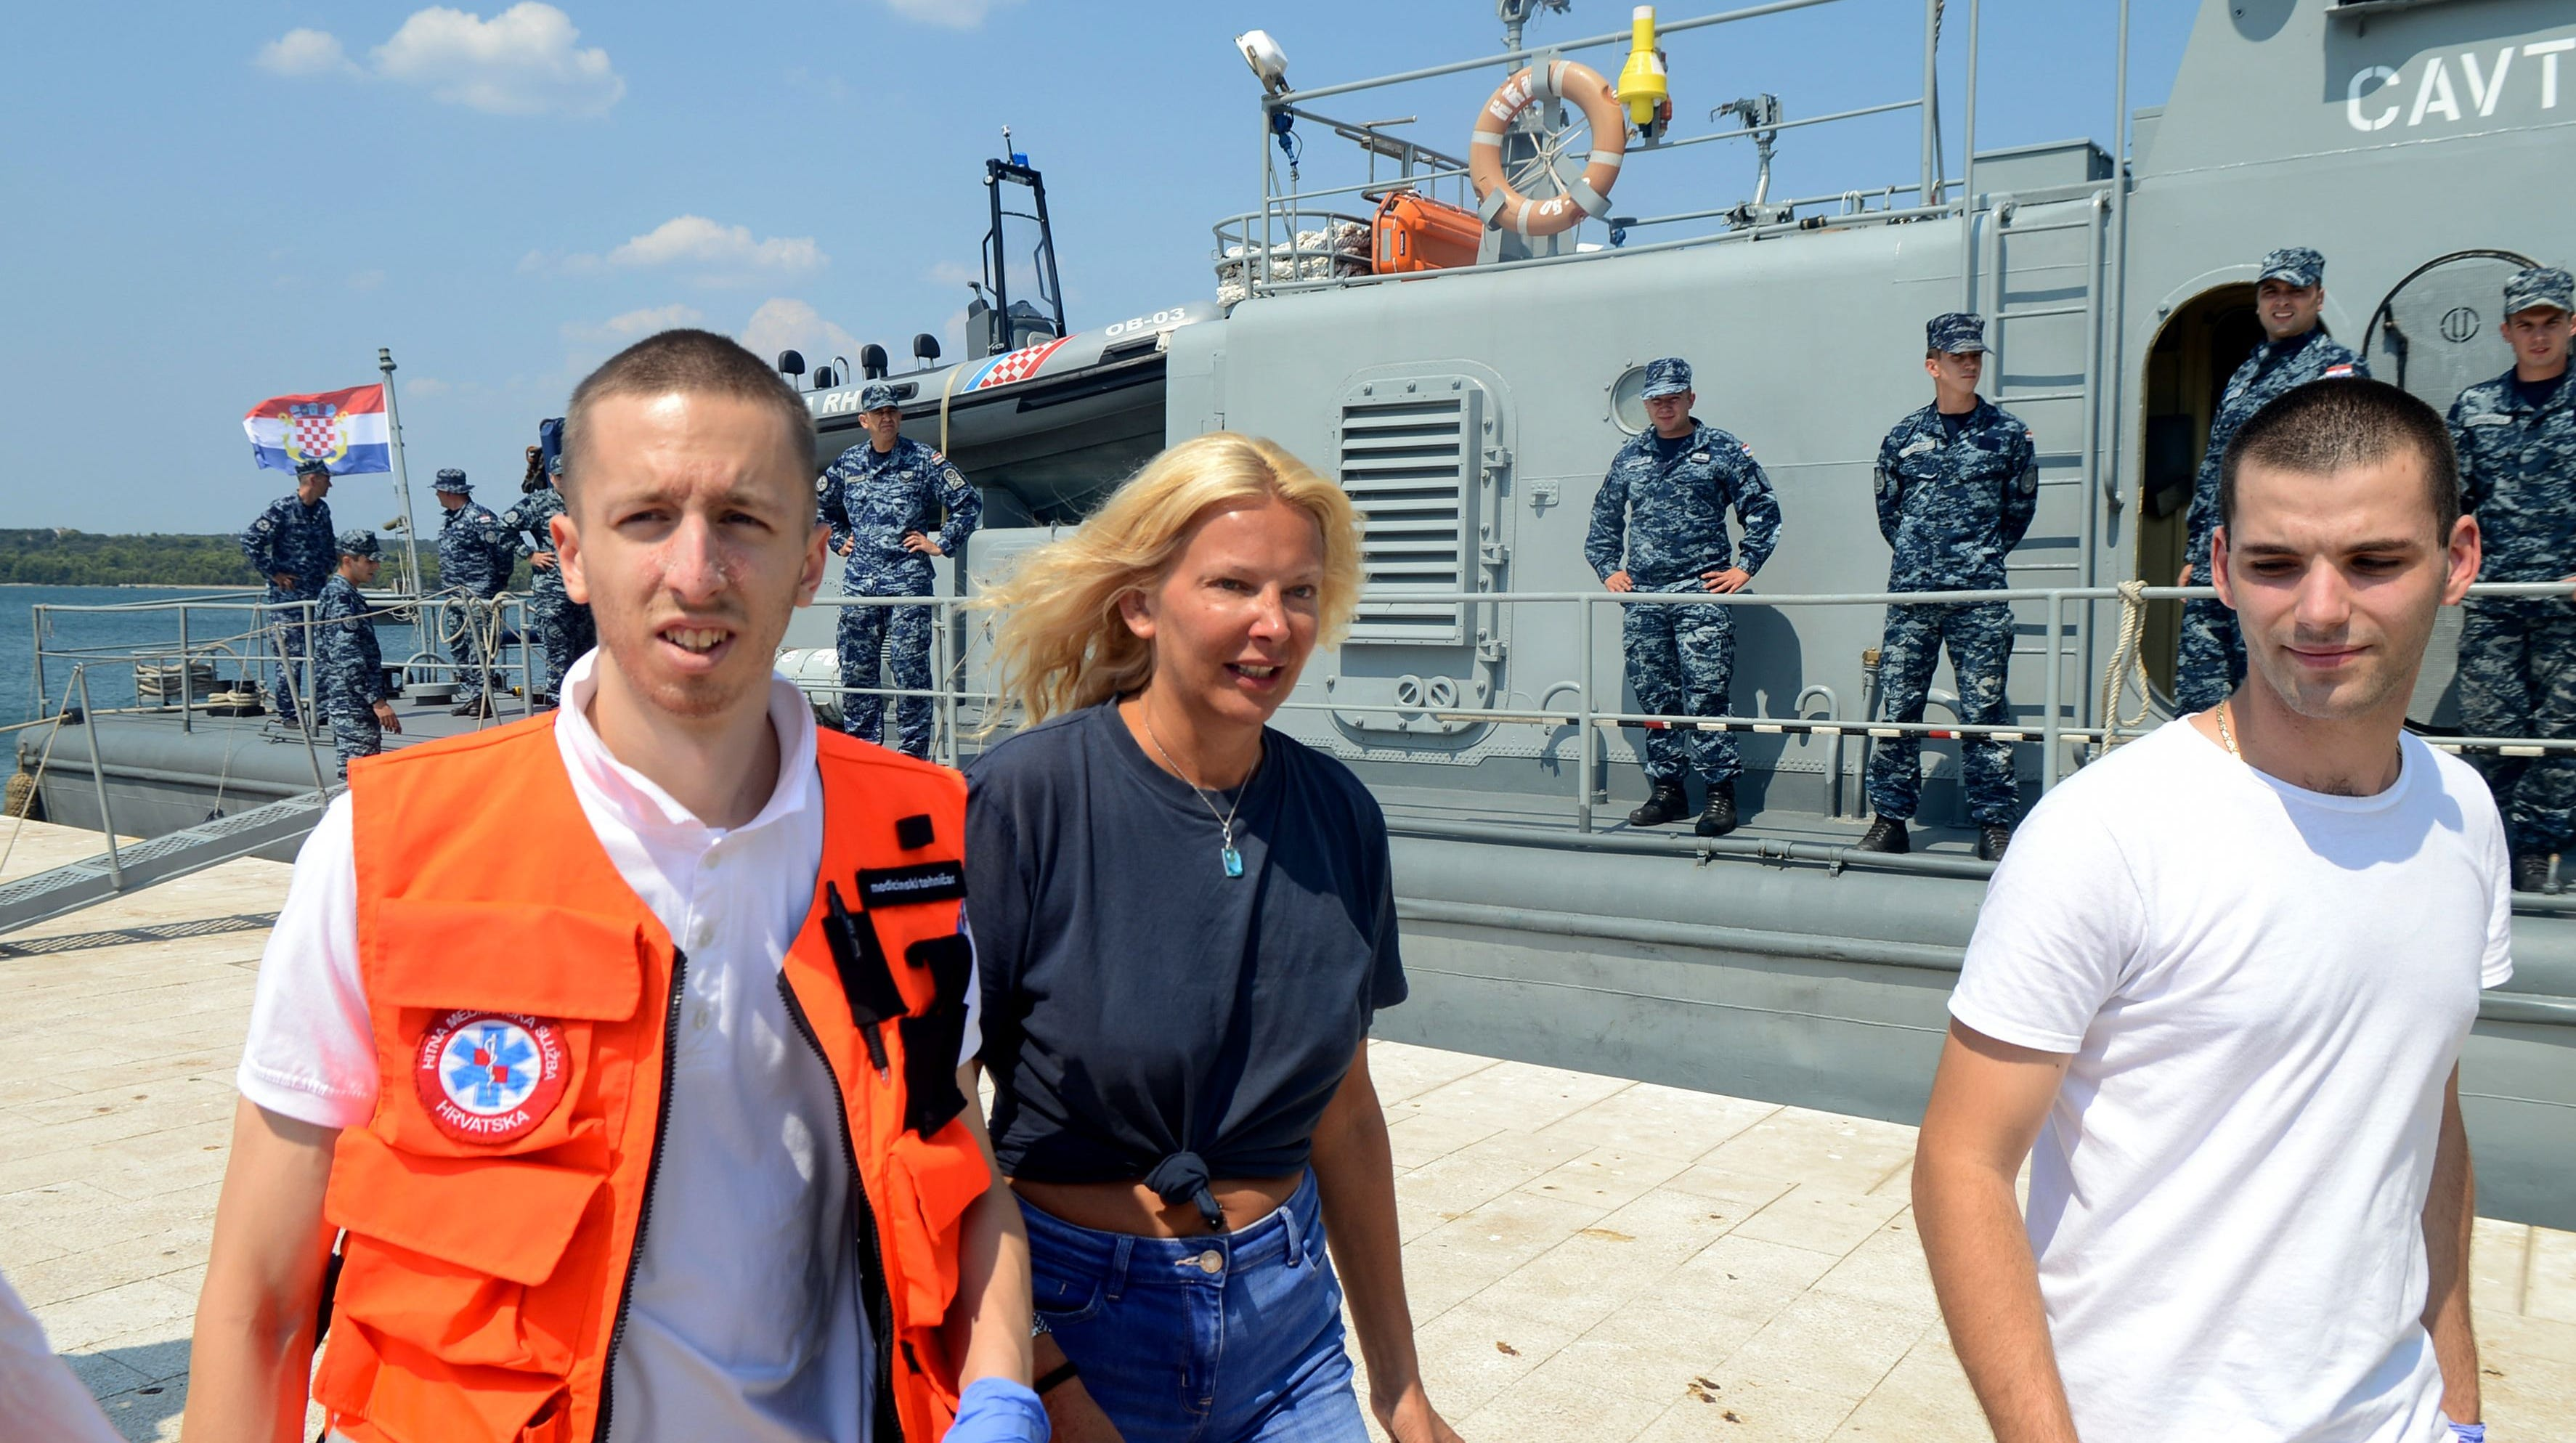 British tourist Kay Longstaff, center, exits Croatias coast guard ship in Pula, on August 19, which saved her after falling off a cruise ship near Croatian coast.